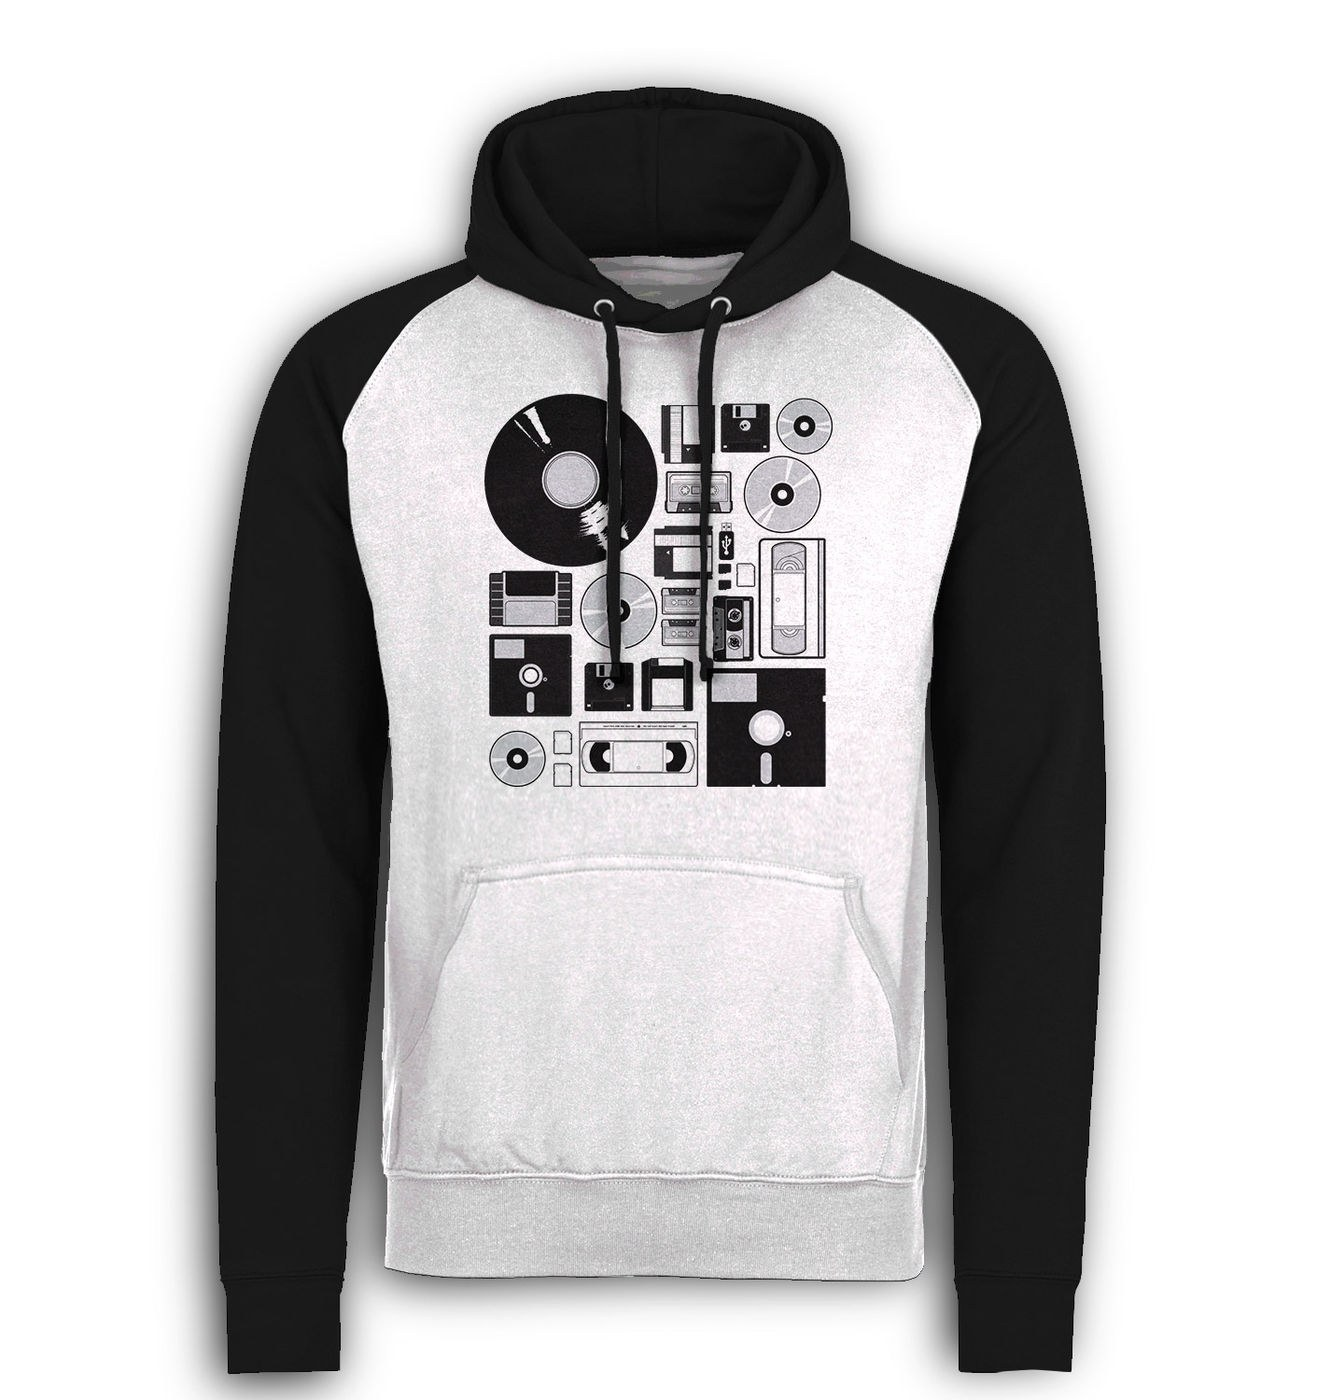 All The Data baseball hoodie by Something Geeky